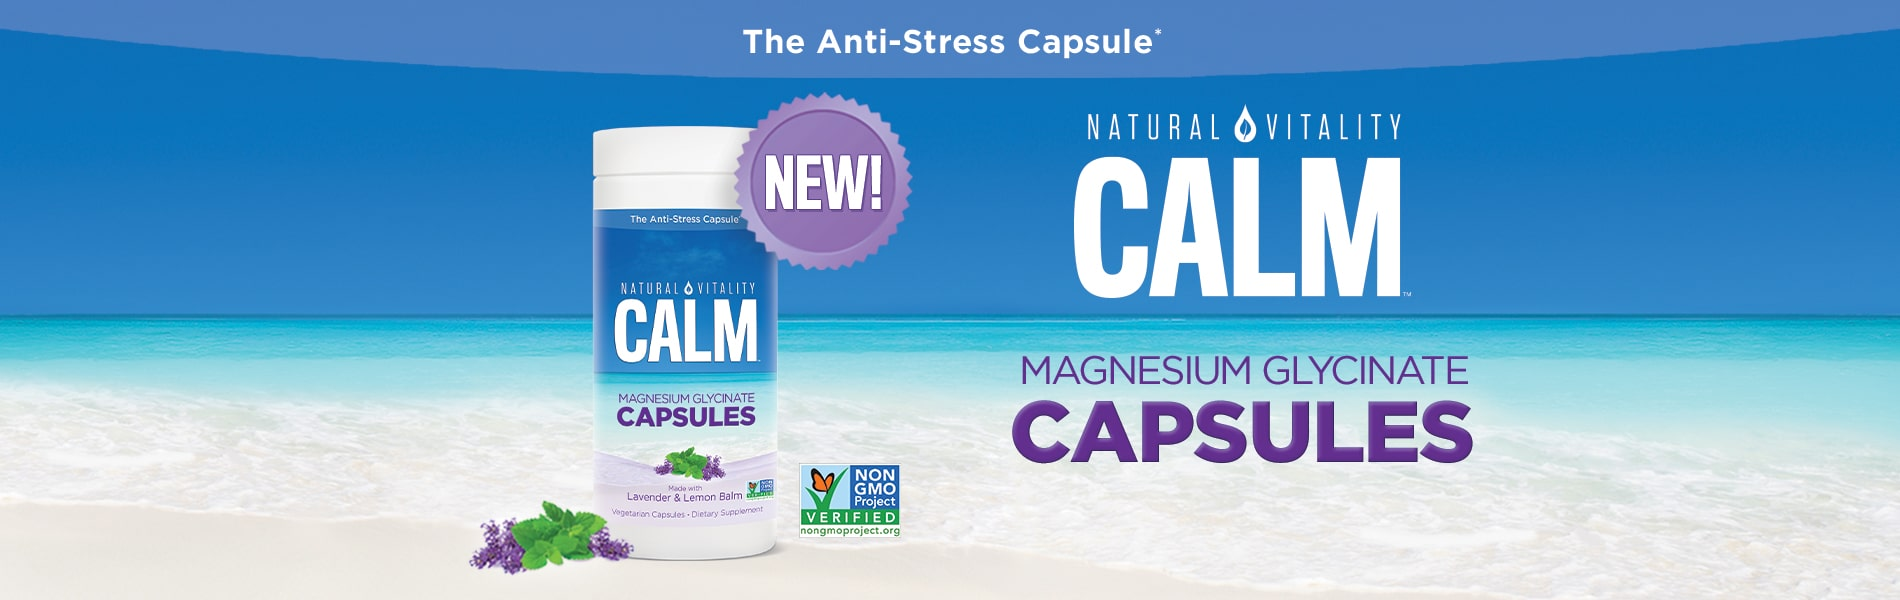 Introducing Natural Vitality Calm Capsules!